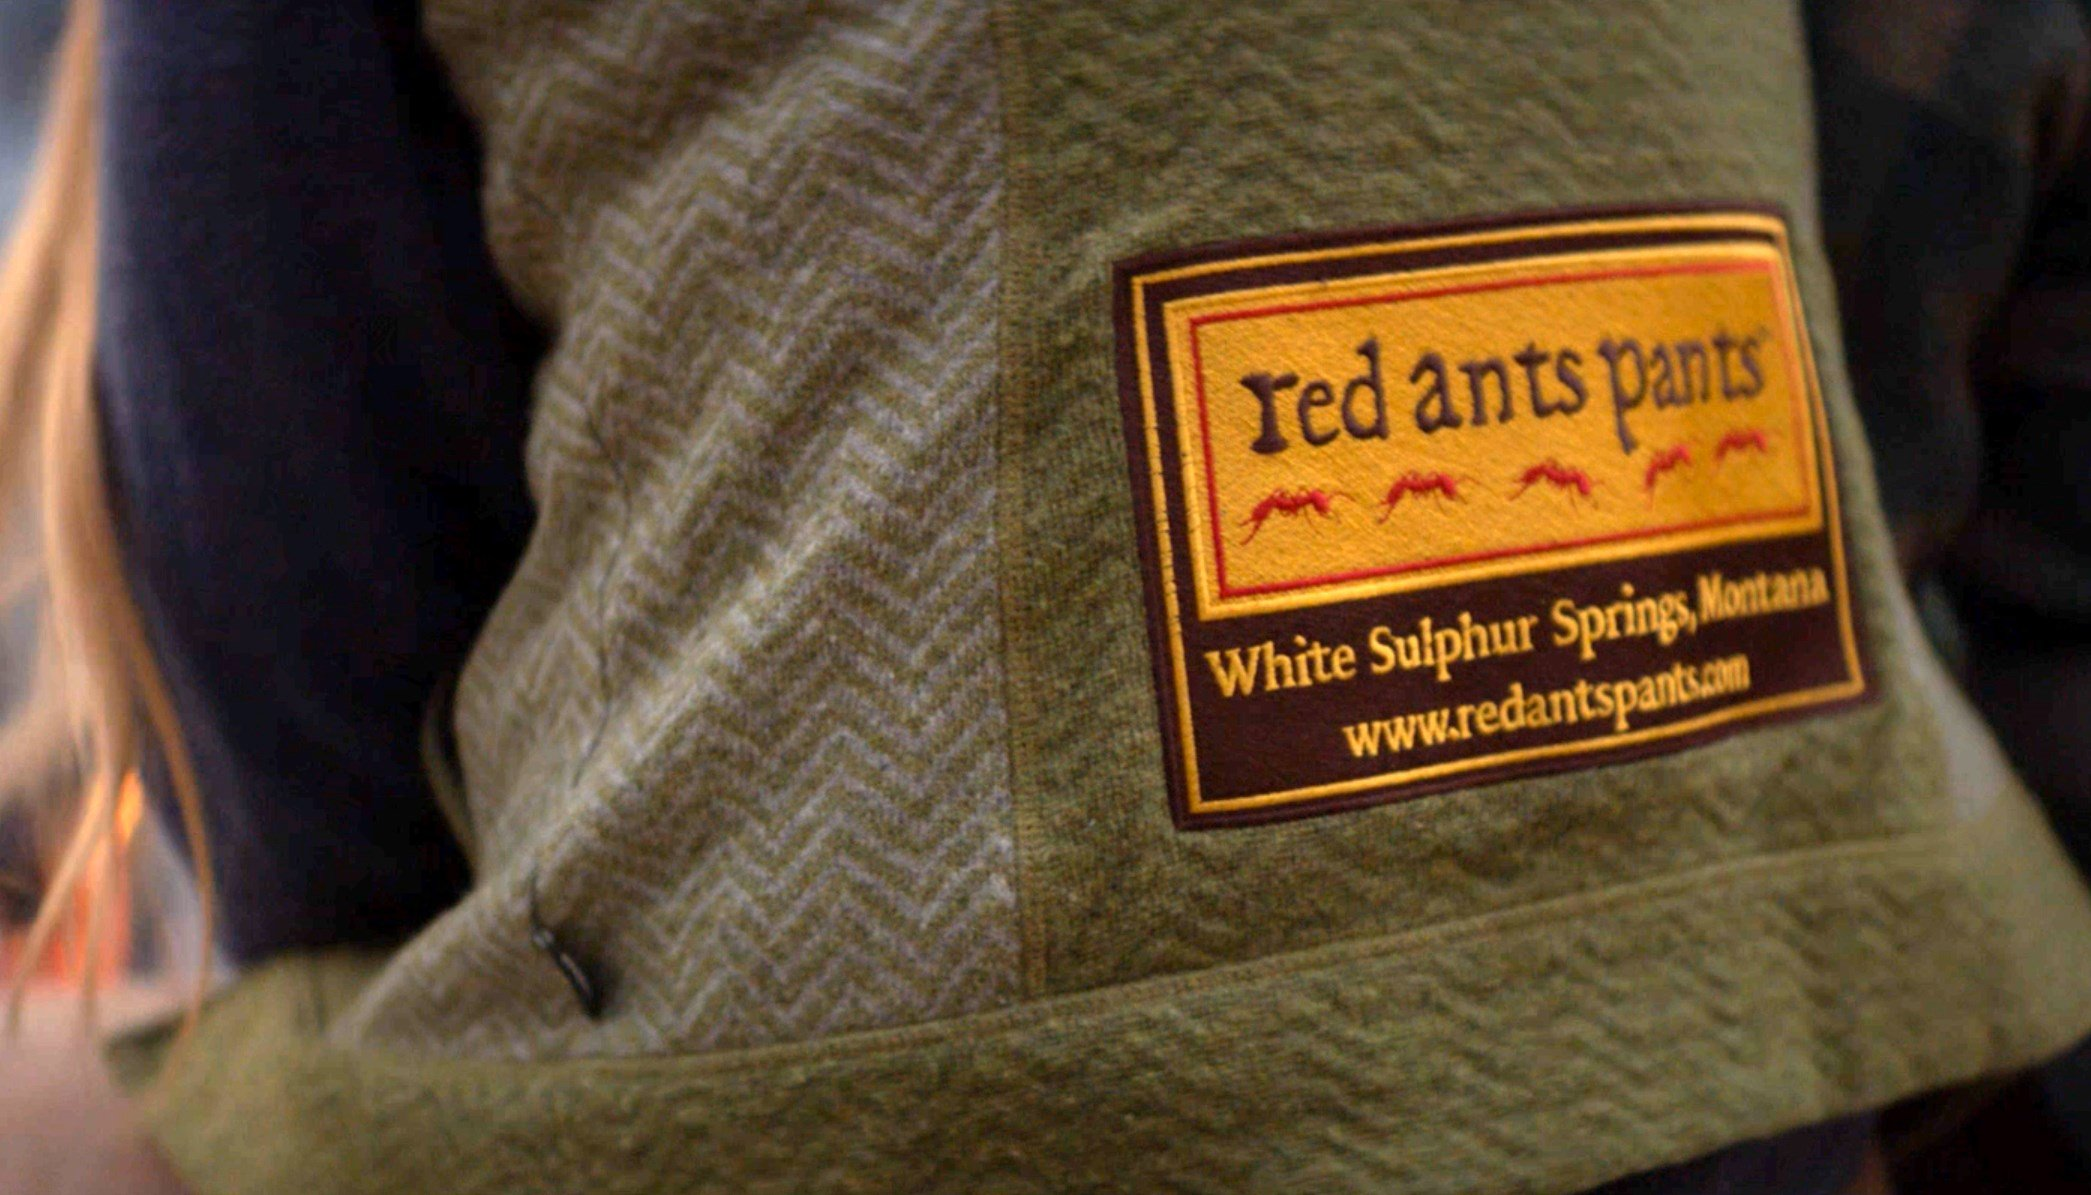 Red Ants Pants is an innovative workwear company located in White Sulphur Springs.